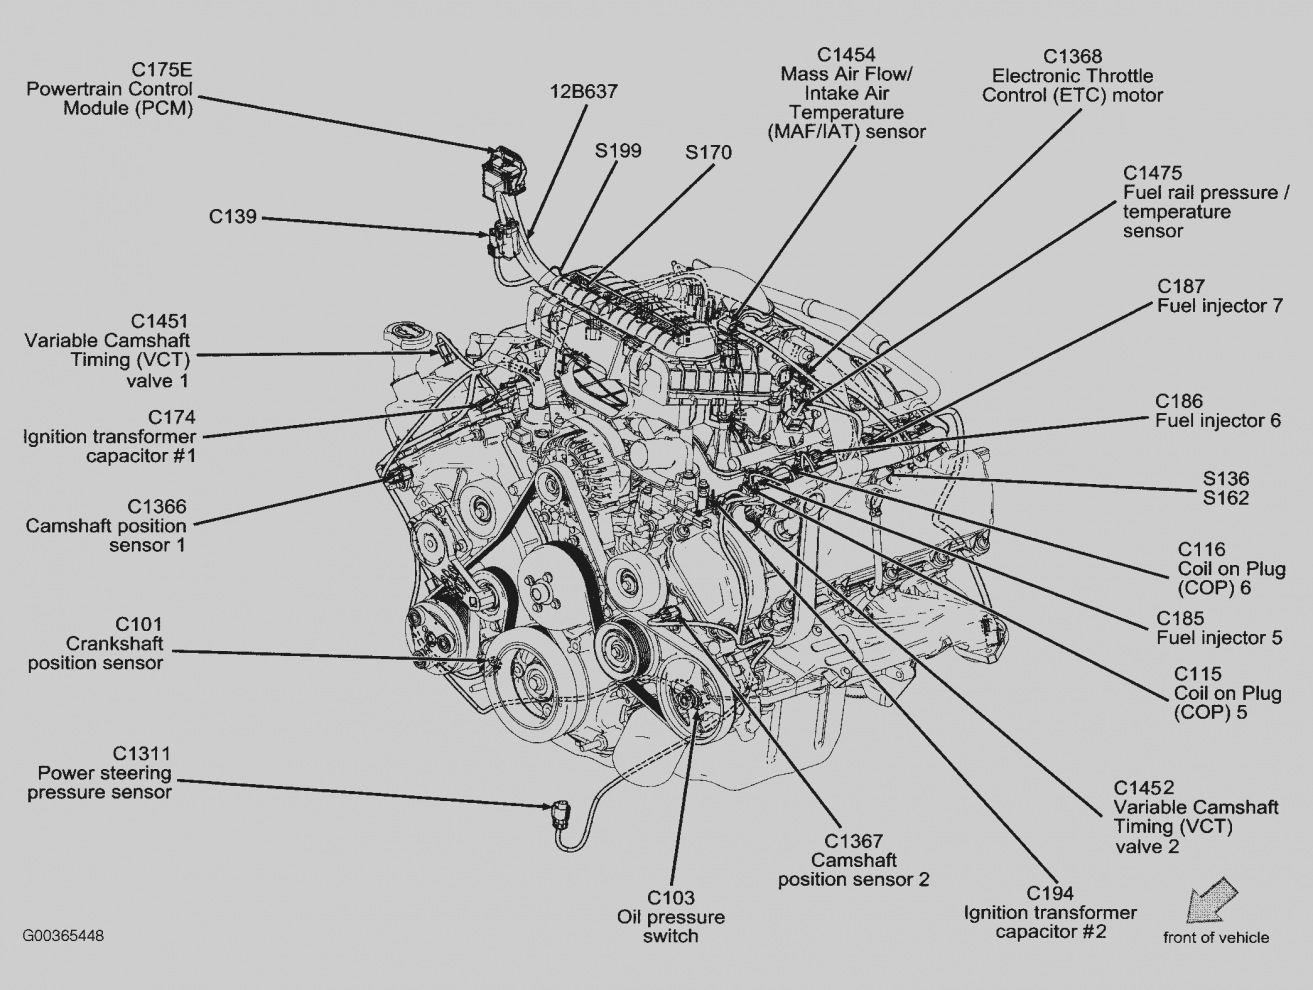 2000 Ford 4 6 Engine Wiring - Buick Rendezvous Engine Diagram List Data  Schematicsantuariomadredelbuonconsiglio.it